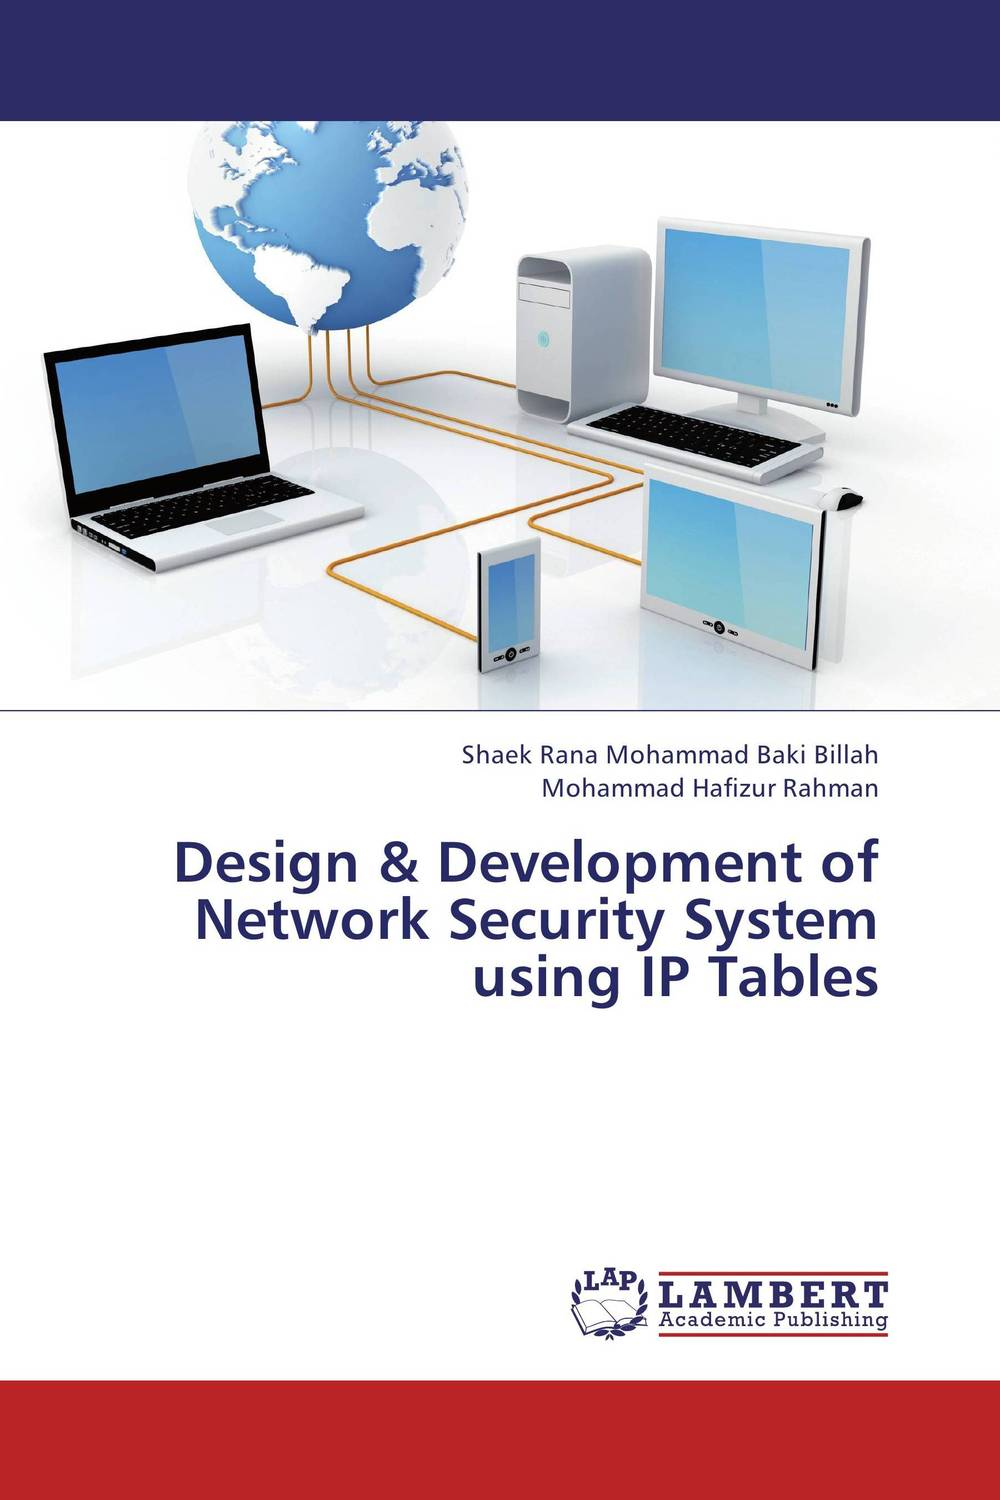 Design & Development of Network Security System using IP Tables